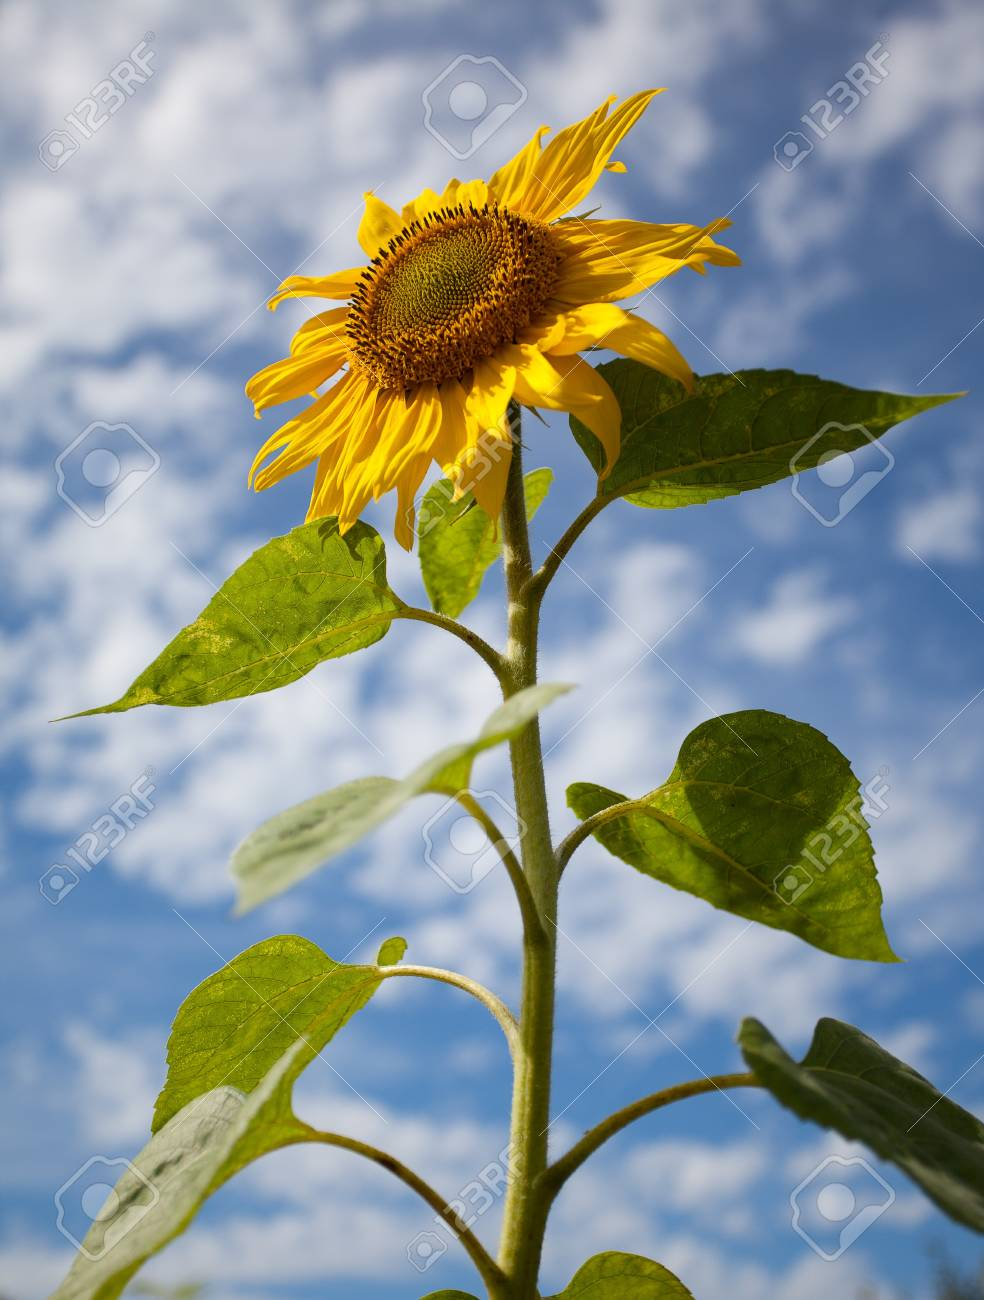 Sunflowers shot against blue sky with small clouds in summer Stock Photo - 7848613